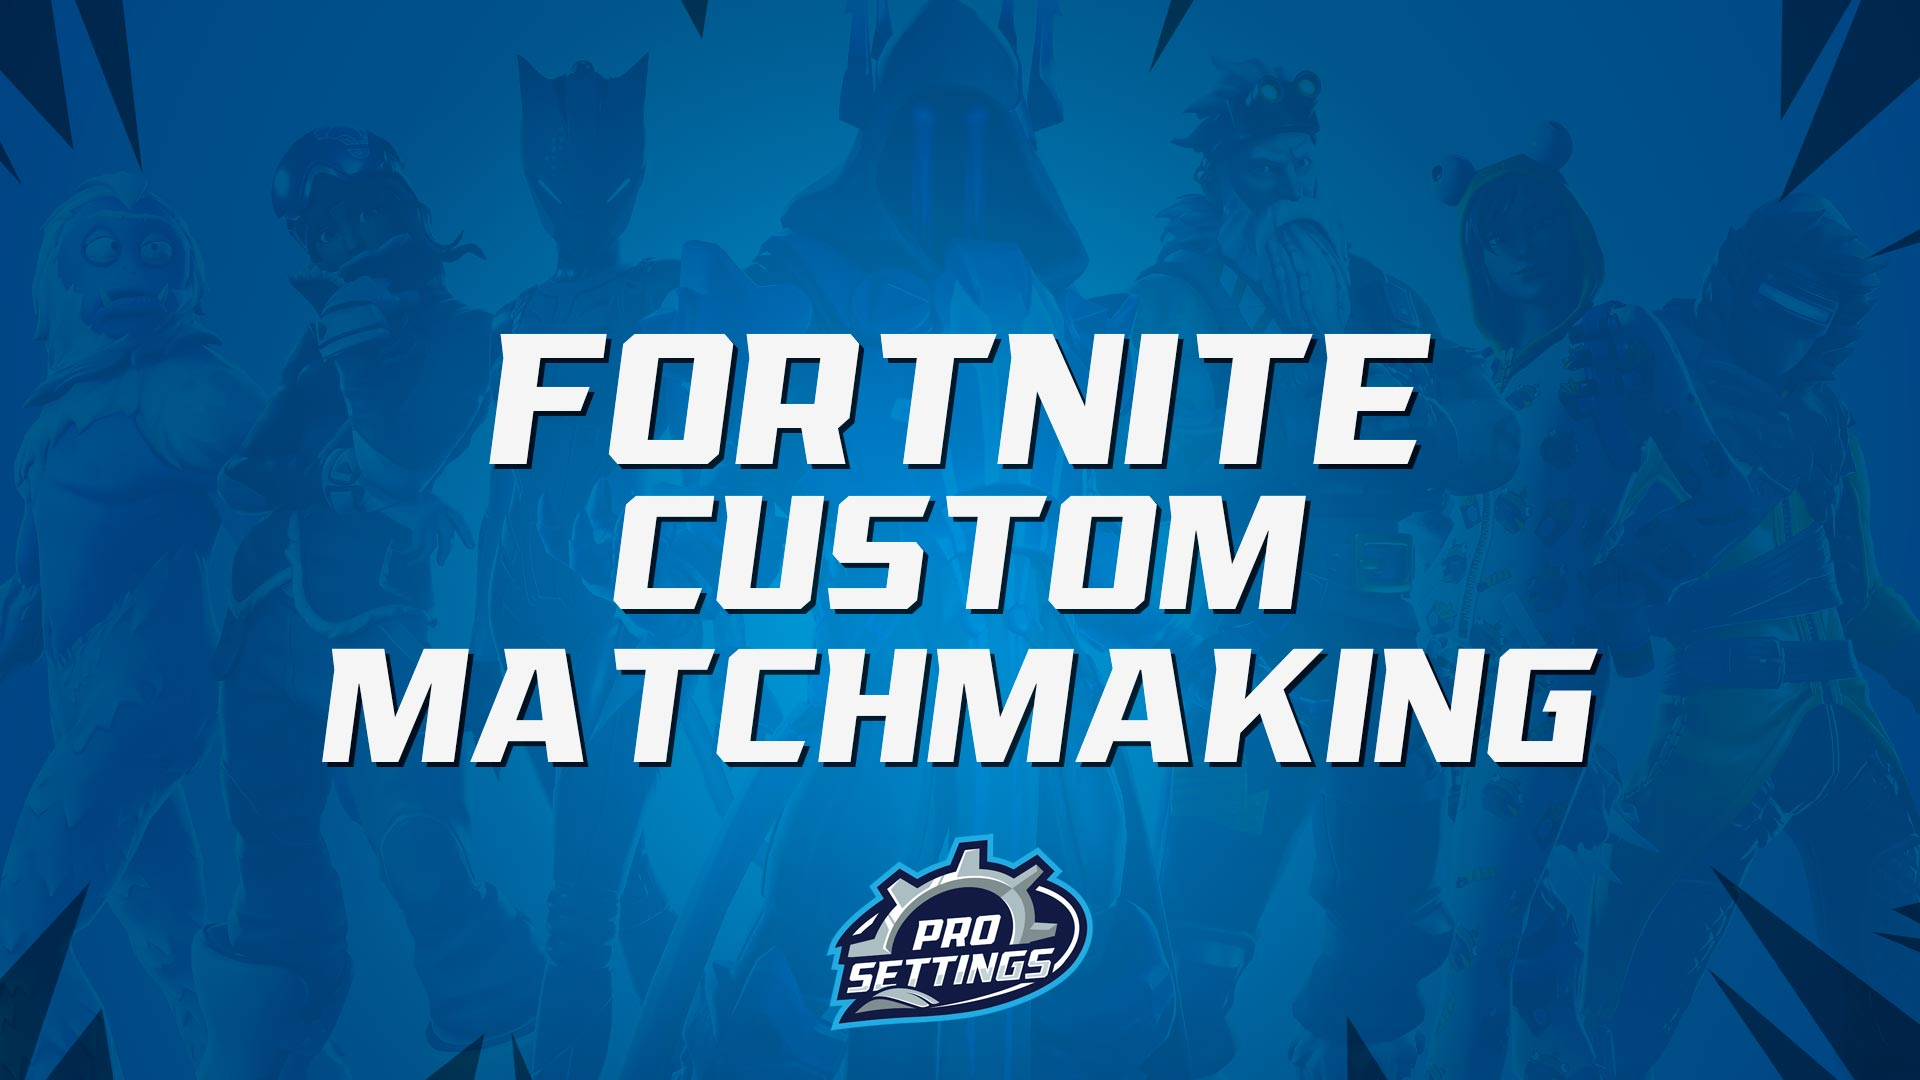 How to get Fortnite Custom Matchmaking Key in 2019